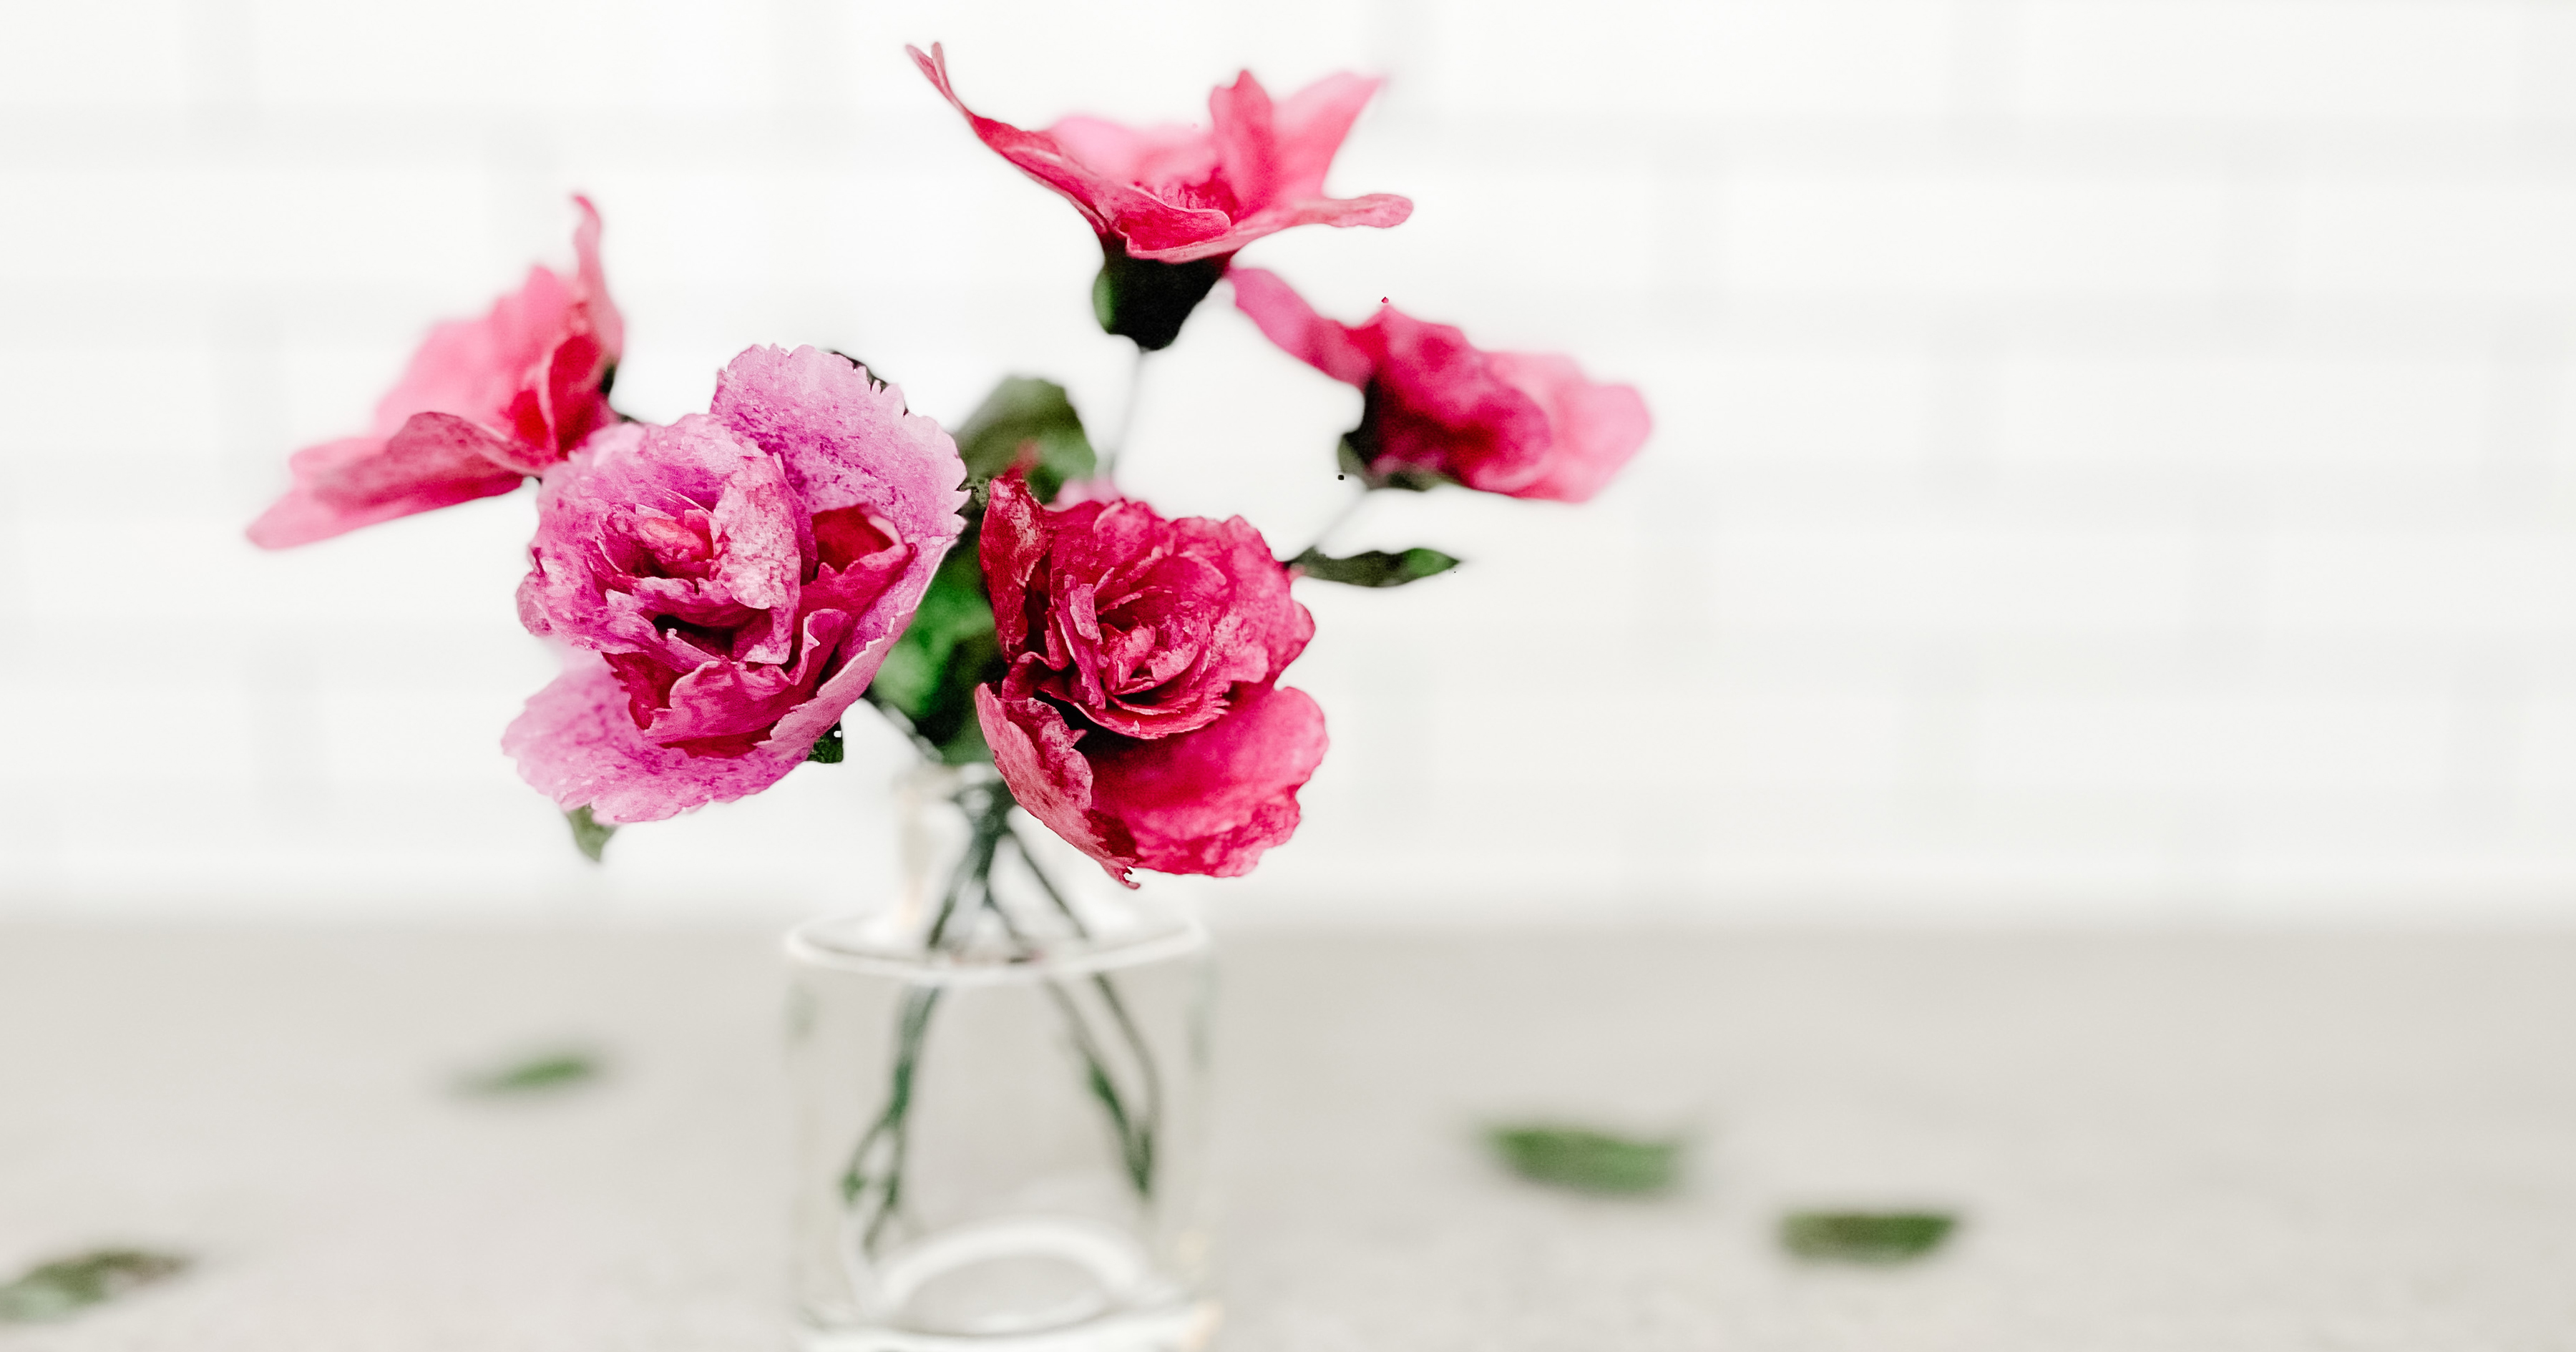 How to Make Edible Wafer Paper Flowers